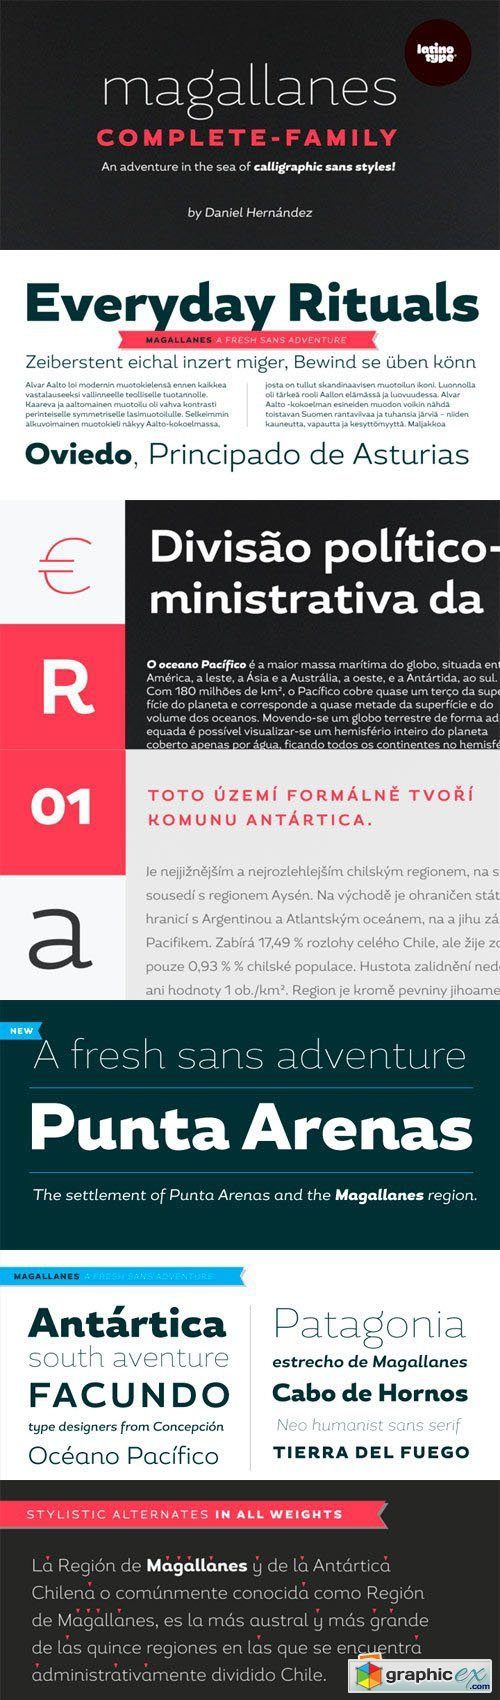 Magallanes Font Family - 16 Fonts for $299